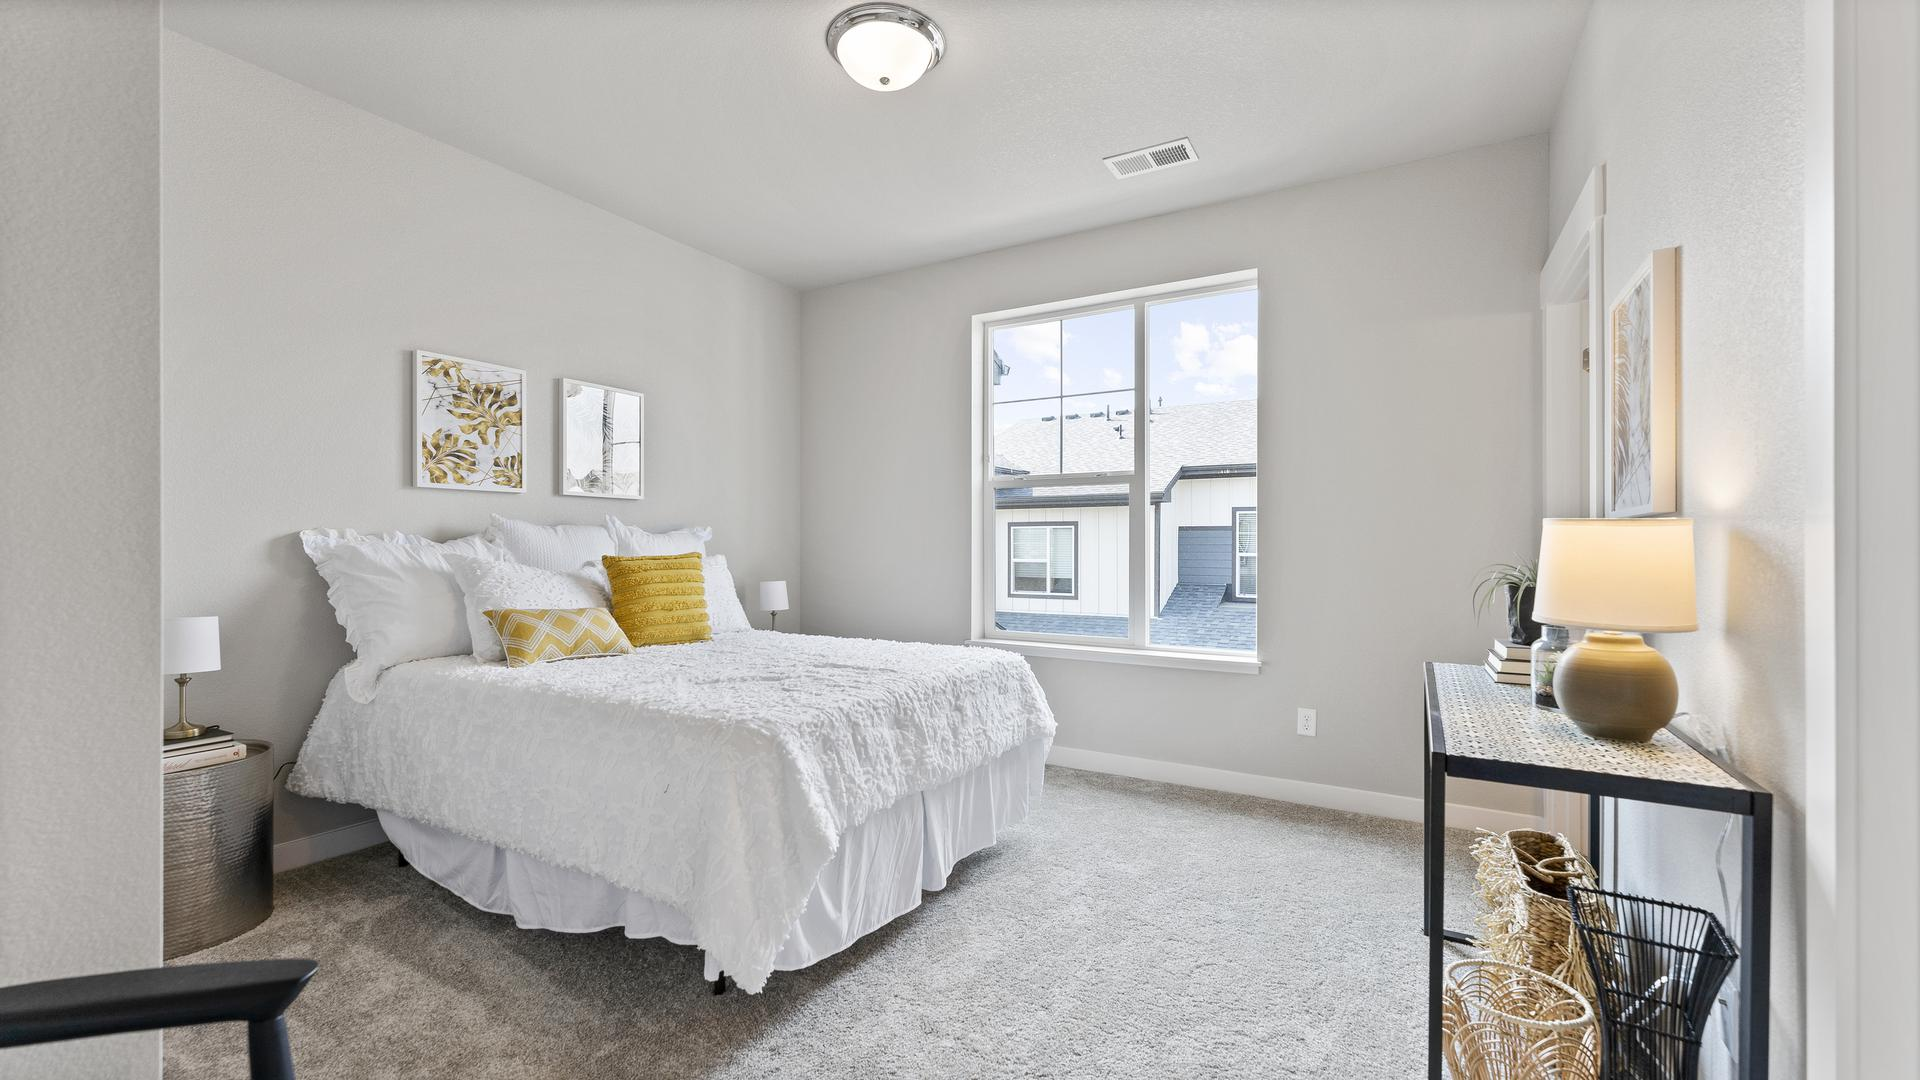 Bedroom 2  - Not Actual Home - Finishes Will Vary